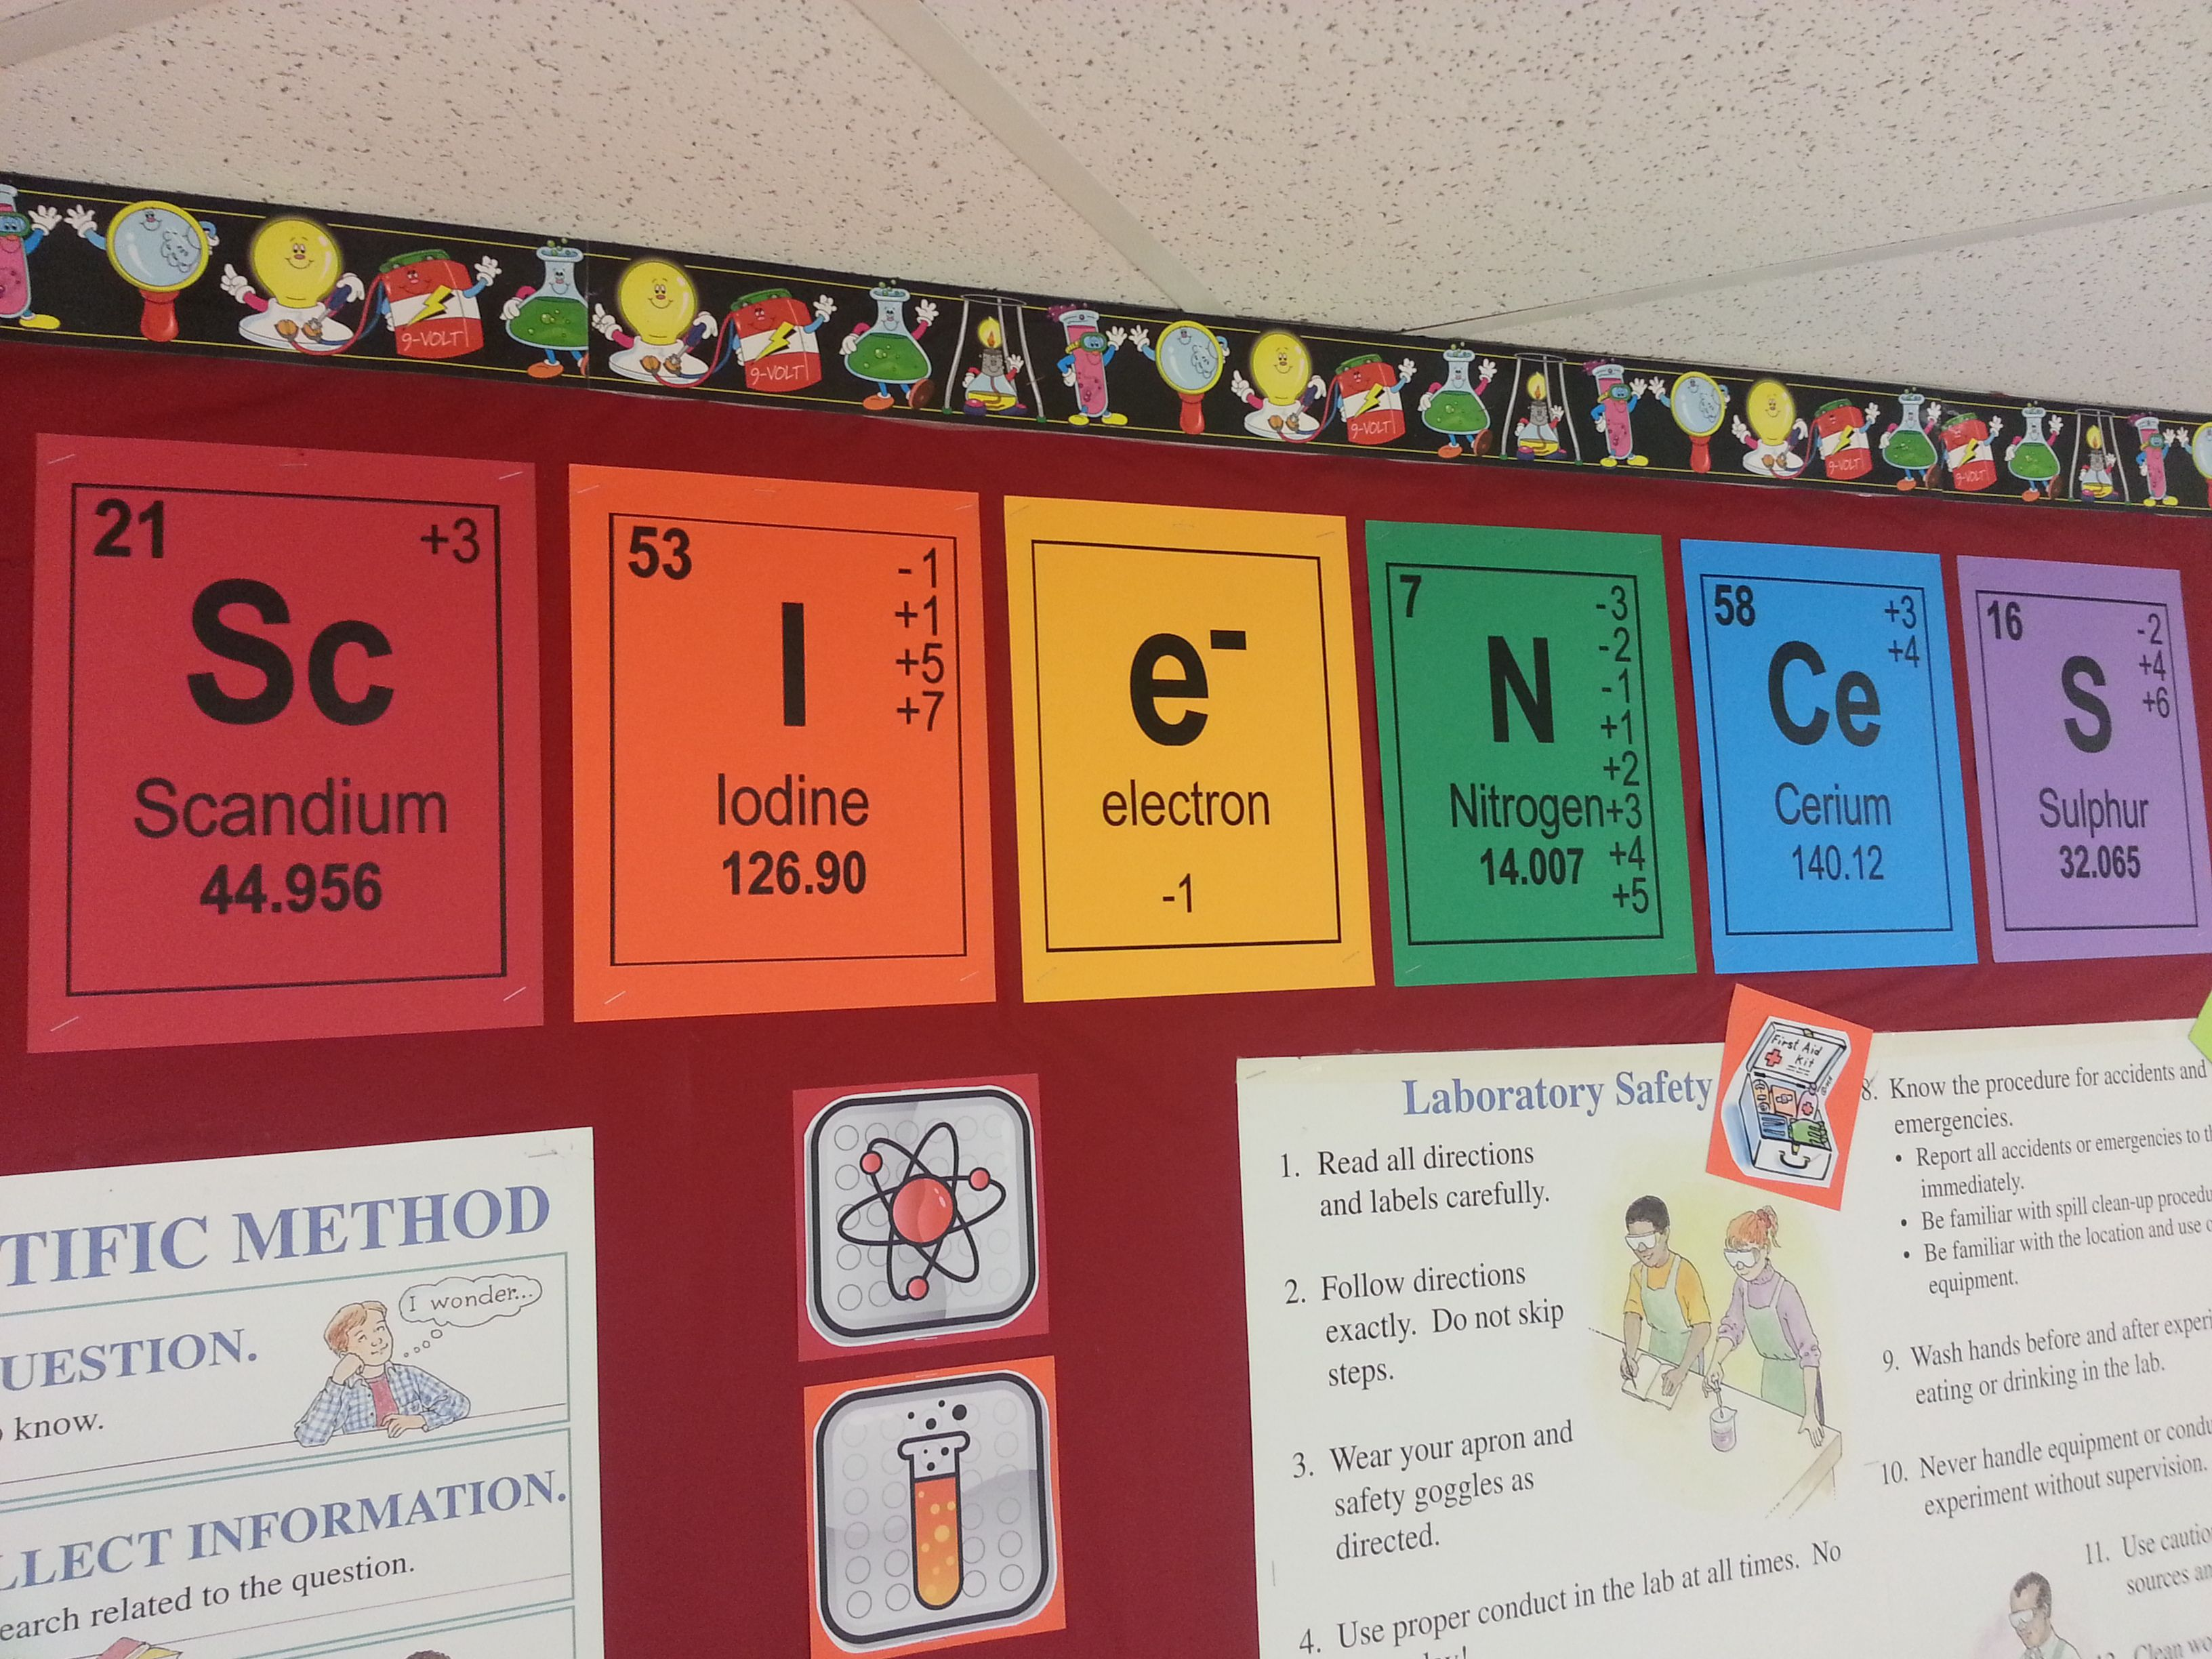 Spell out science sciences en francais using the periodic table spell out science sciences en francais using the periodic table message me and gamestrikefo Gallery